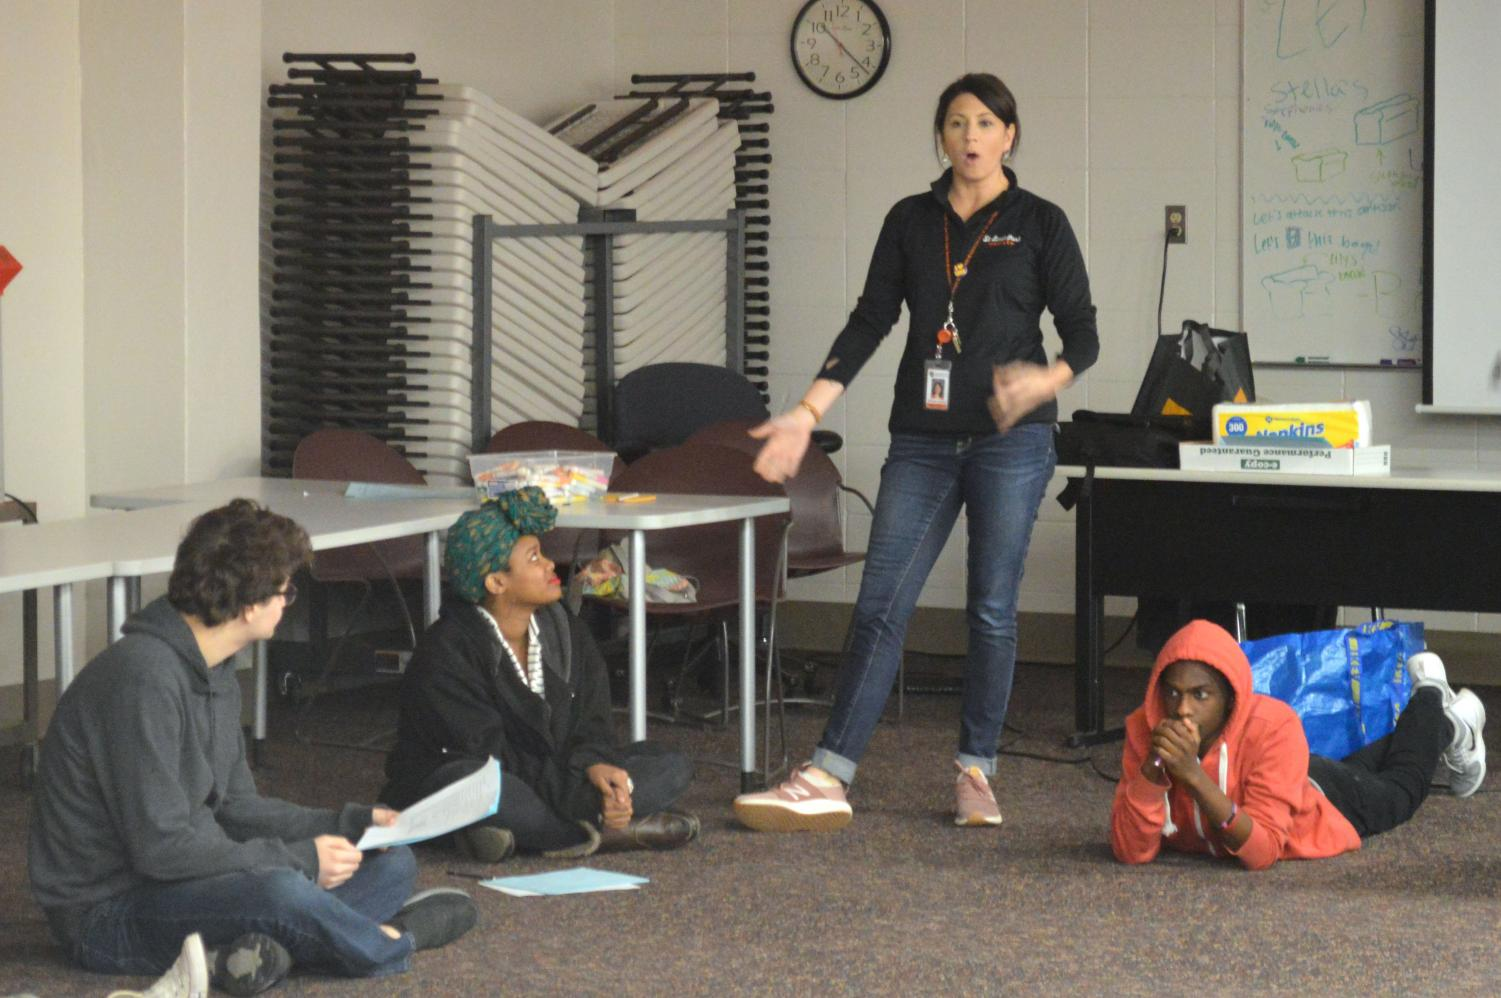 Natural Helpers adviser Allison Luskey speaks during the full day of training. The meeting took place Oct. 26 in B135.